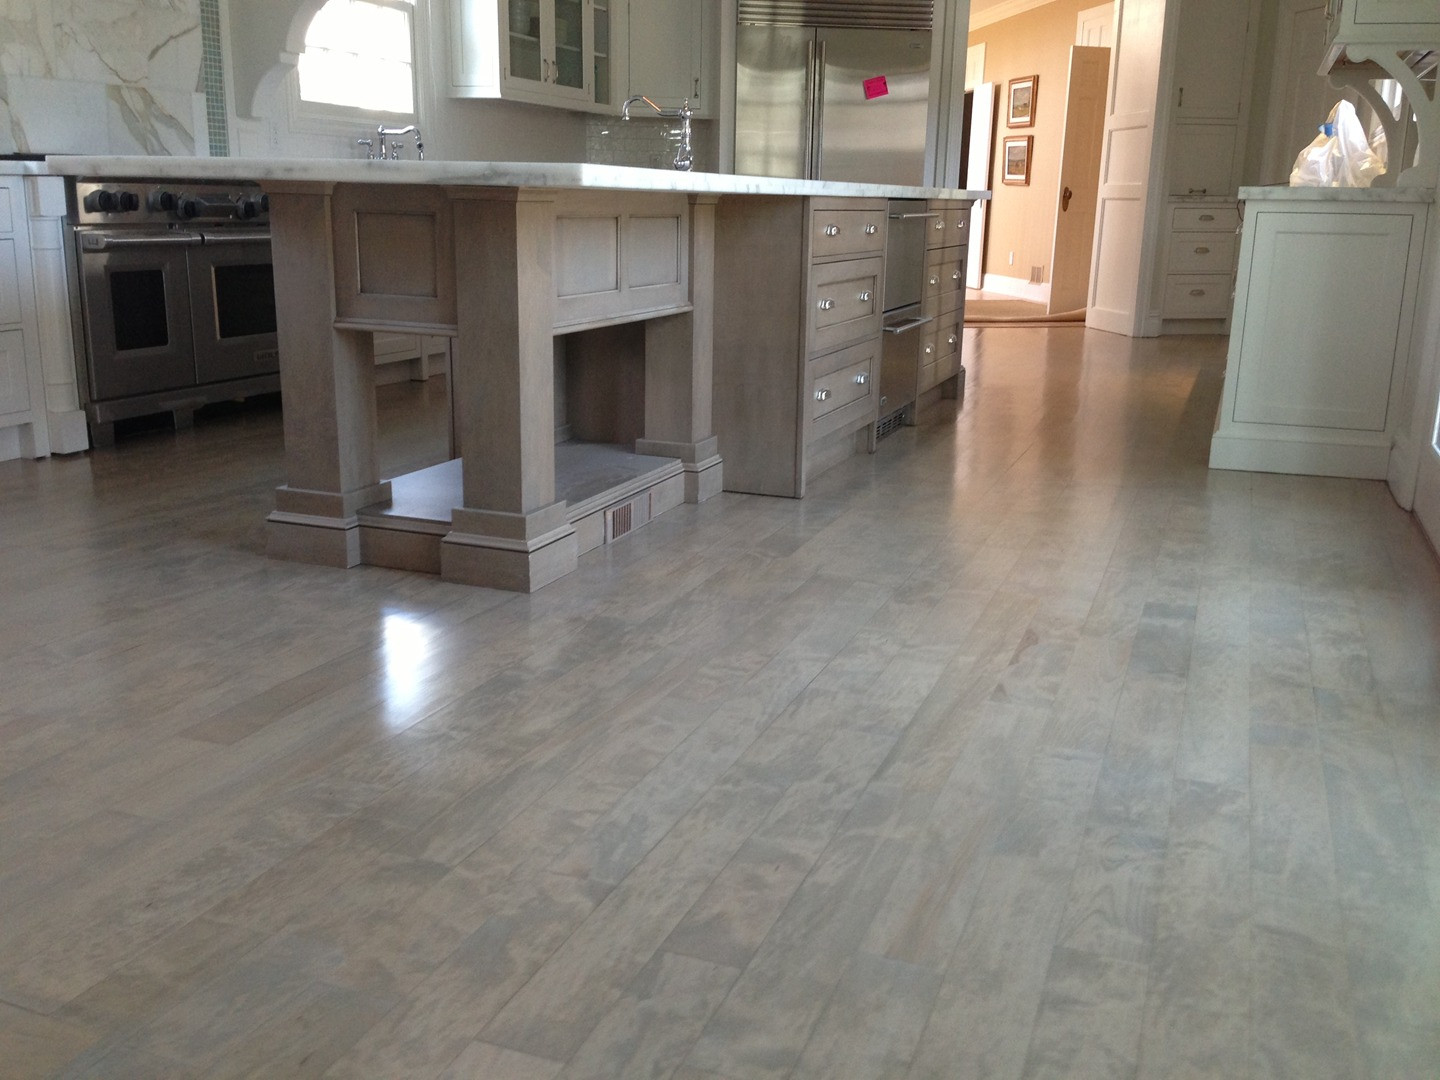 hardwood floor sanding and refinishing near me of j r hardwood floors l l c home inside classic grey stain